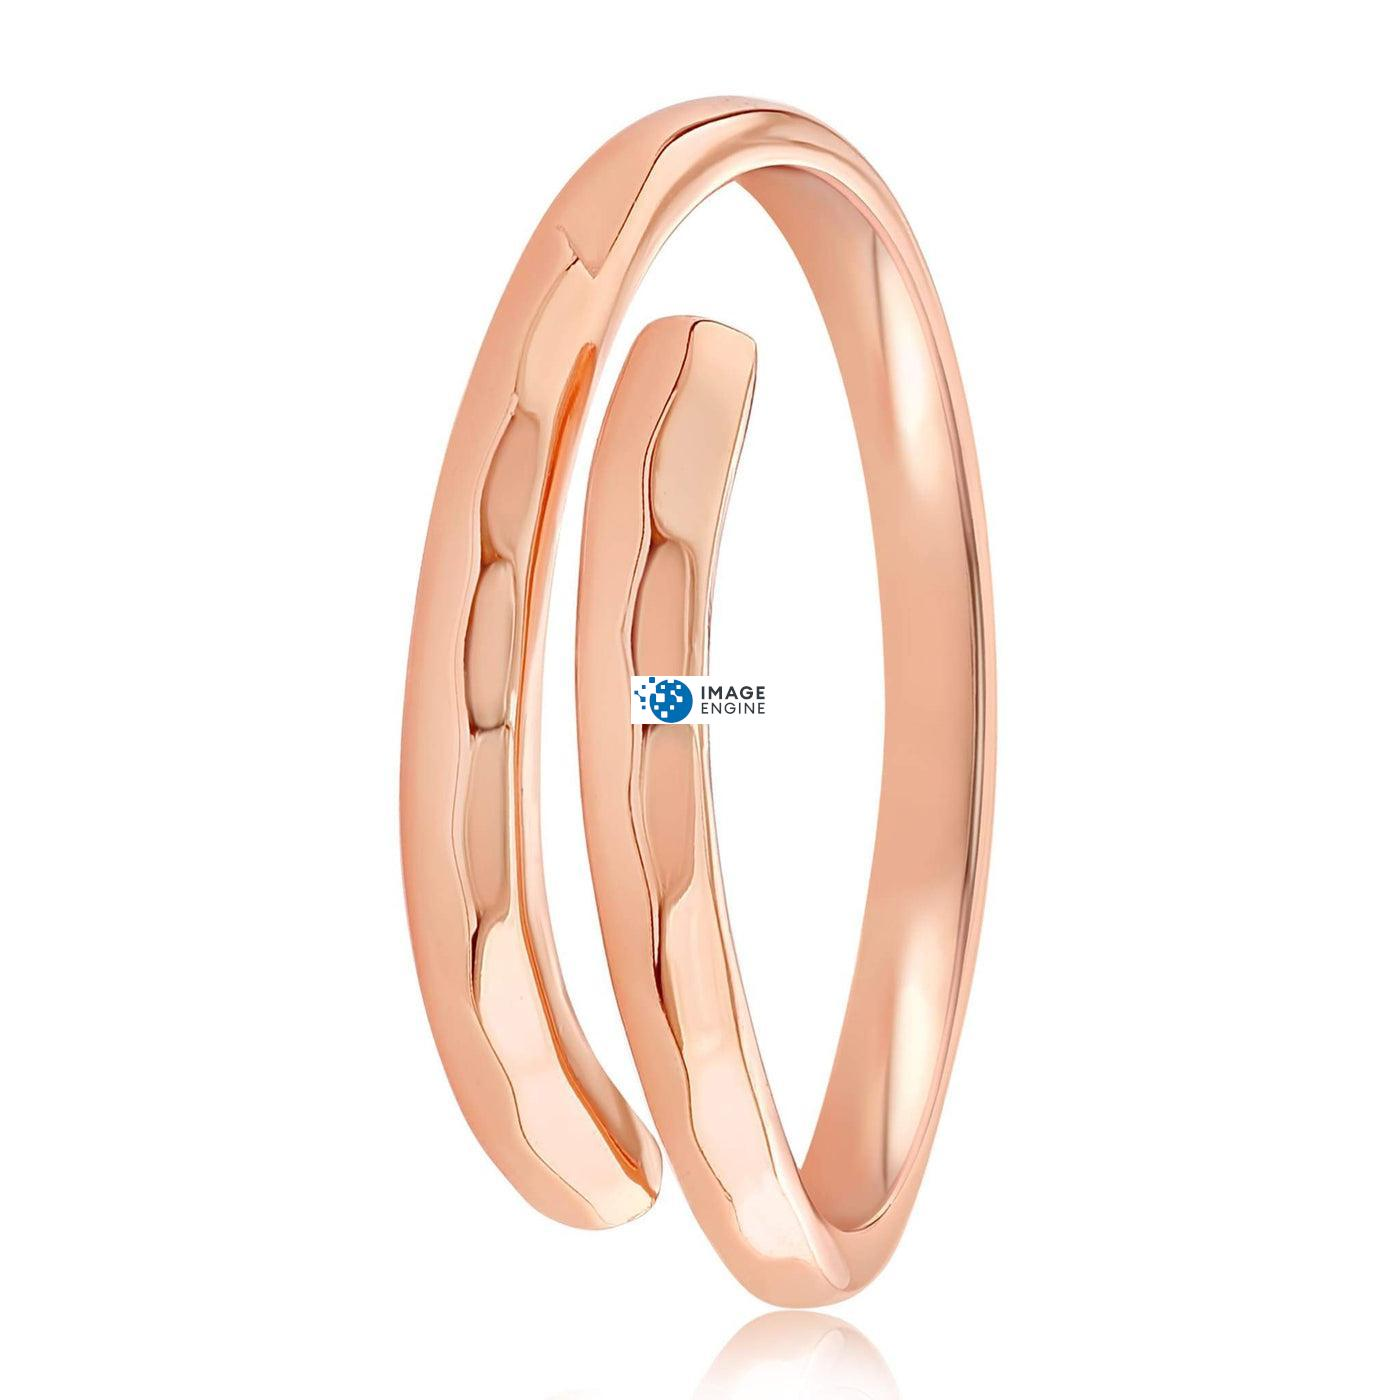 Minimalist Thumb Ring - Side View - 18K Rose Gold Vermeil